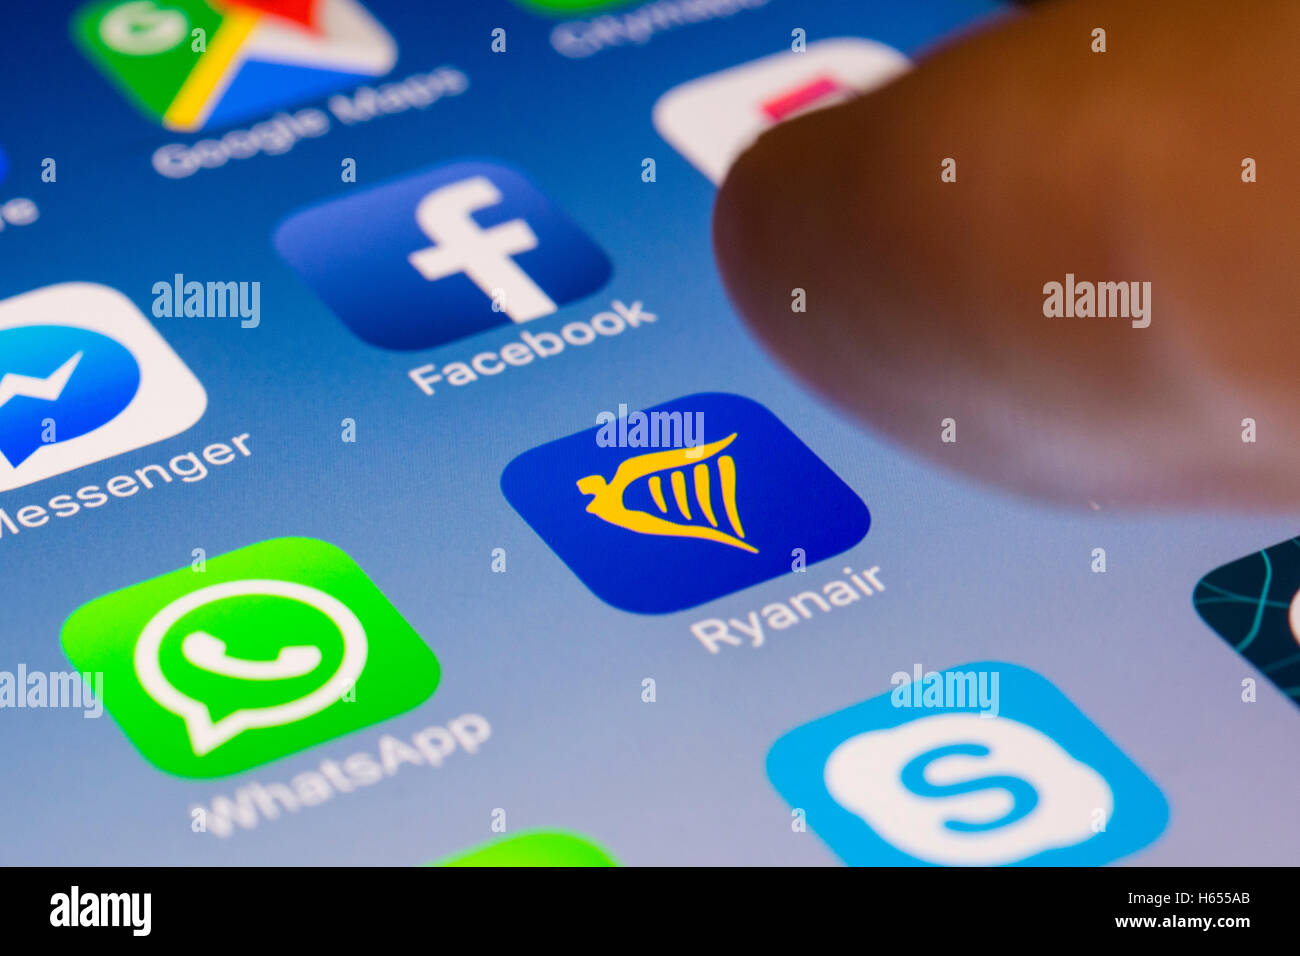 Ryanair budget airline flight booking app close up on iPhone smart phone screen - Stock Image